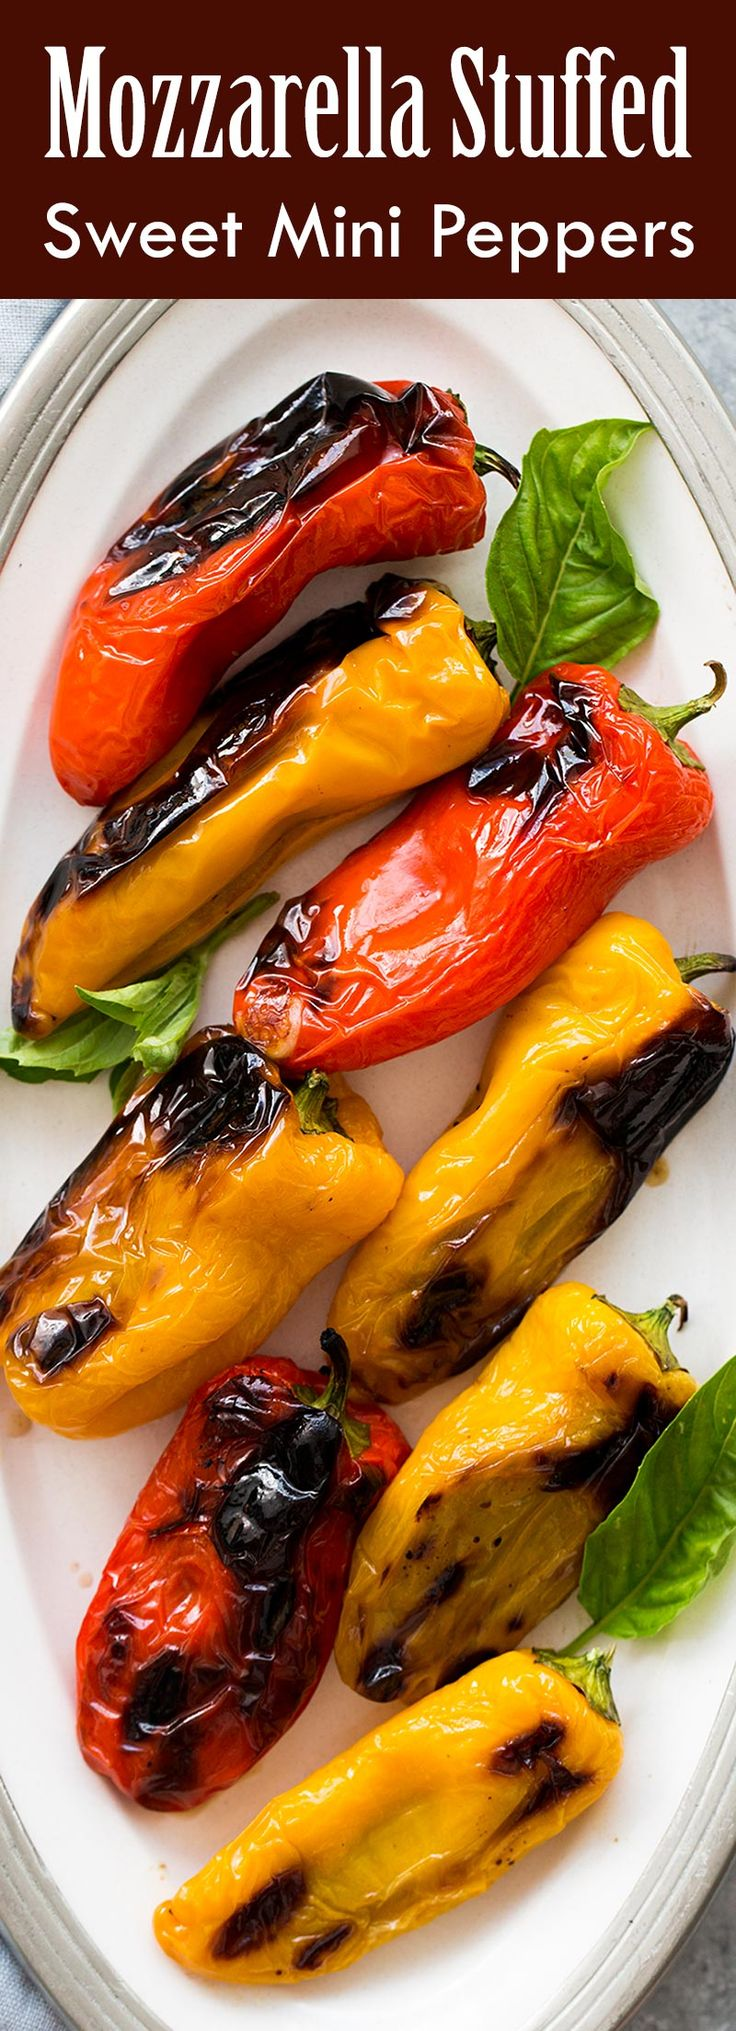 Perfect summer appetizer! These sweet mini peppers are stuffed with smoked mozzarella cheese and basil. Grill, bake, or broil. So easy! A real crowd pleaser.…